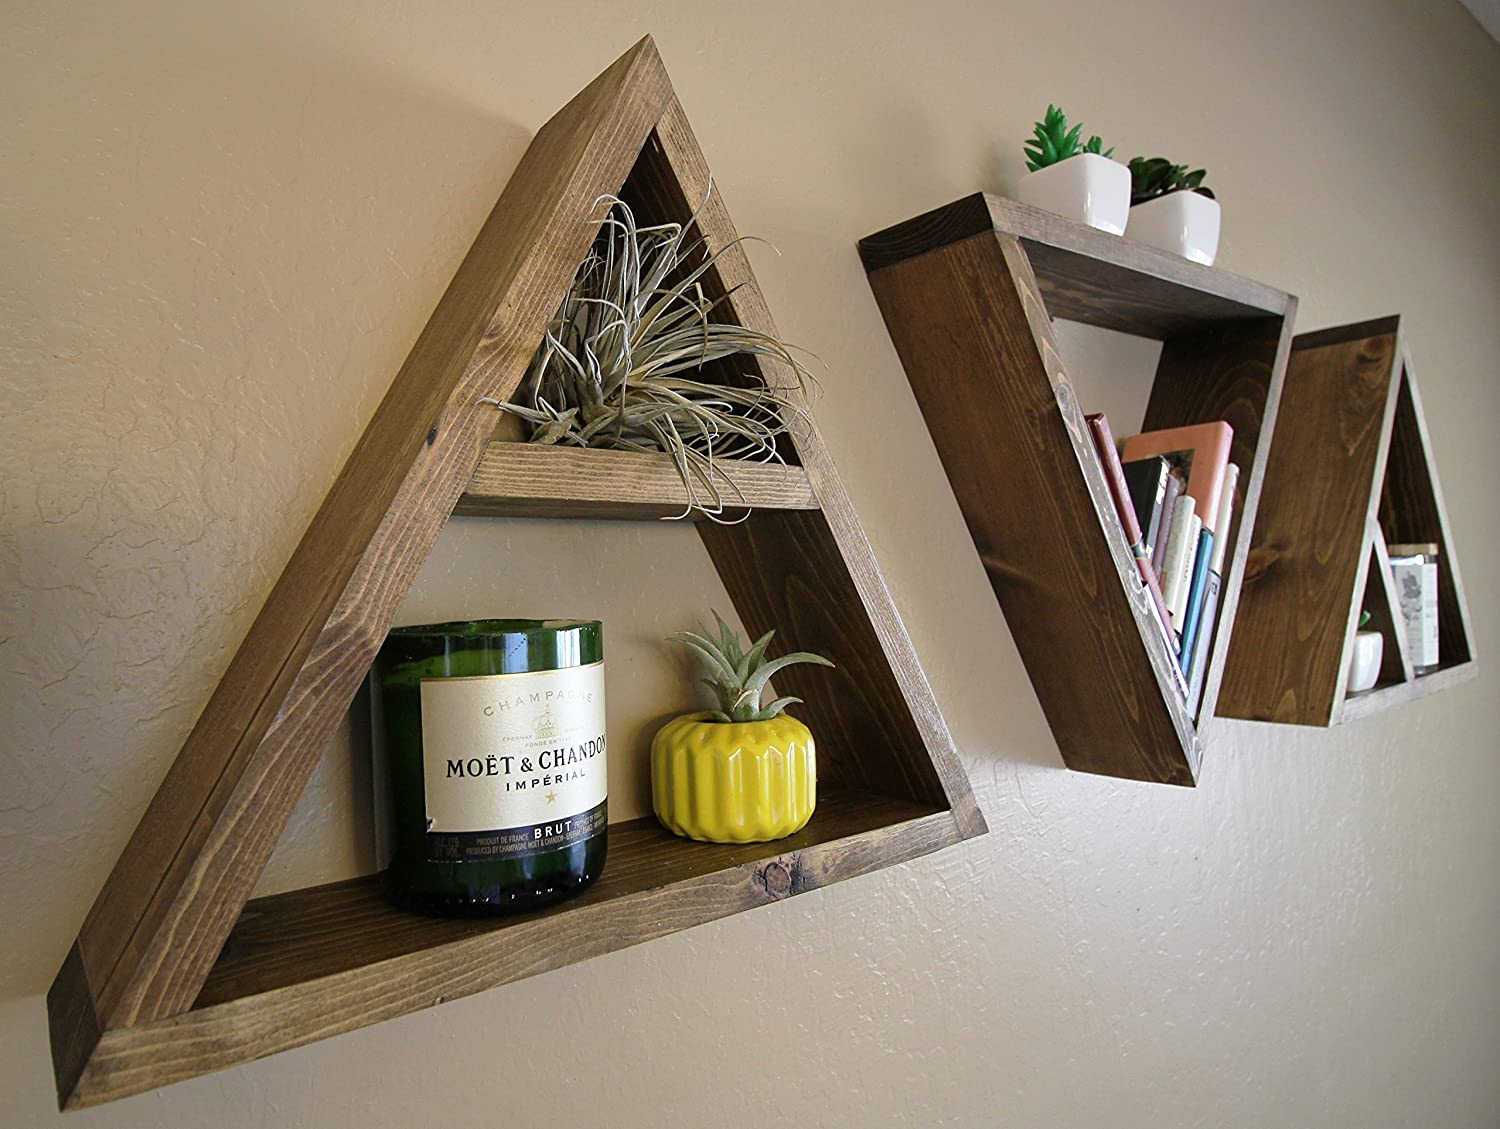 Wood Triangle Storage Shelf - Max 77% OFF CUSTOM COLOR or Set of 3 Single Selling and selling